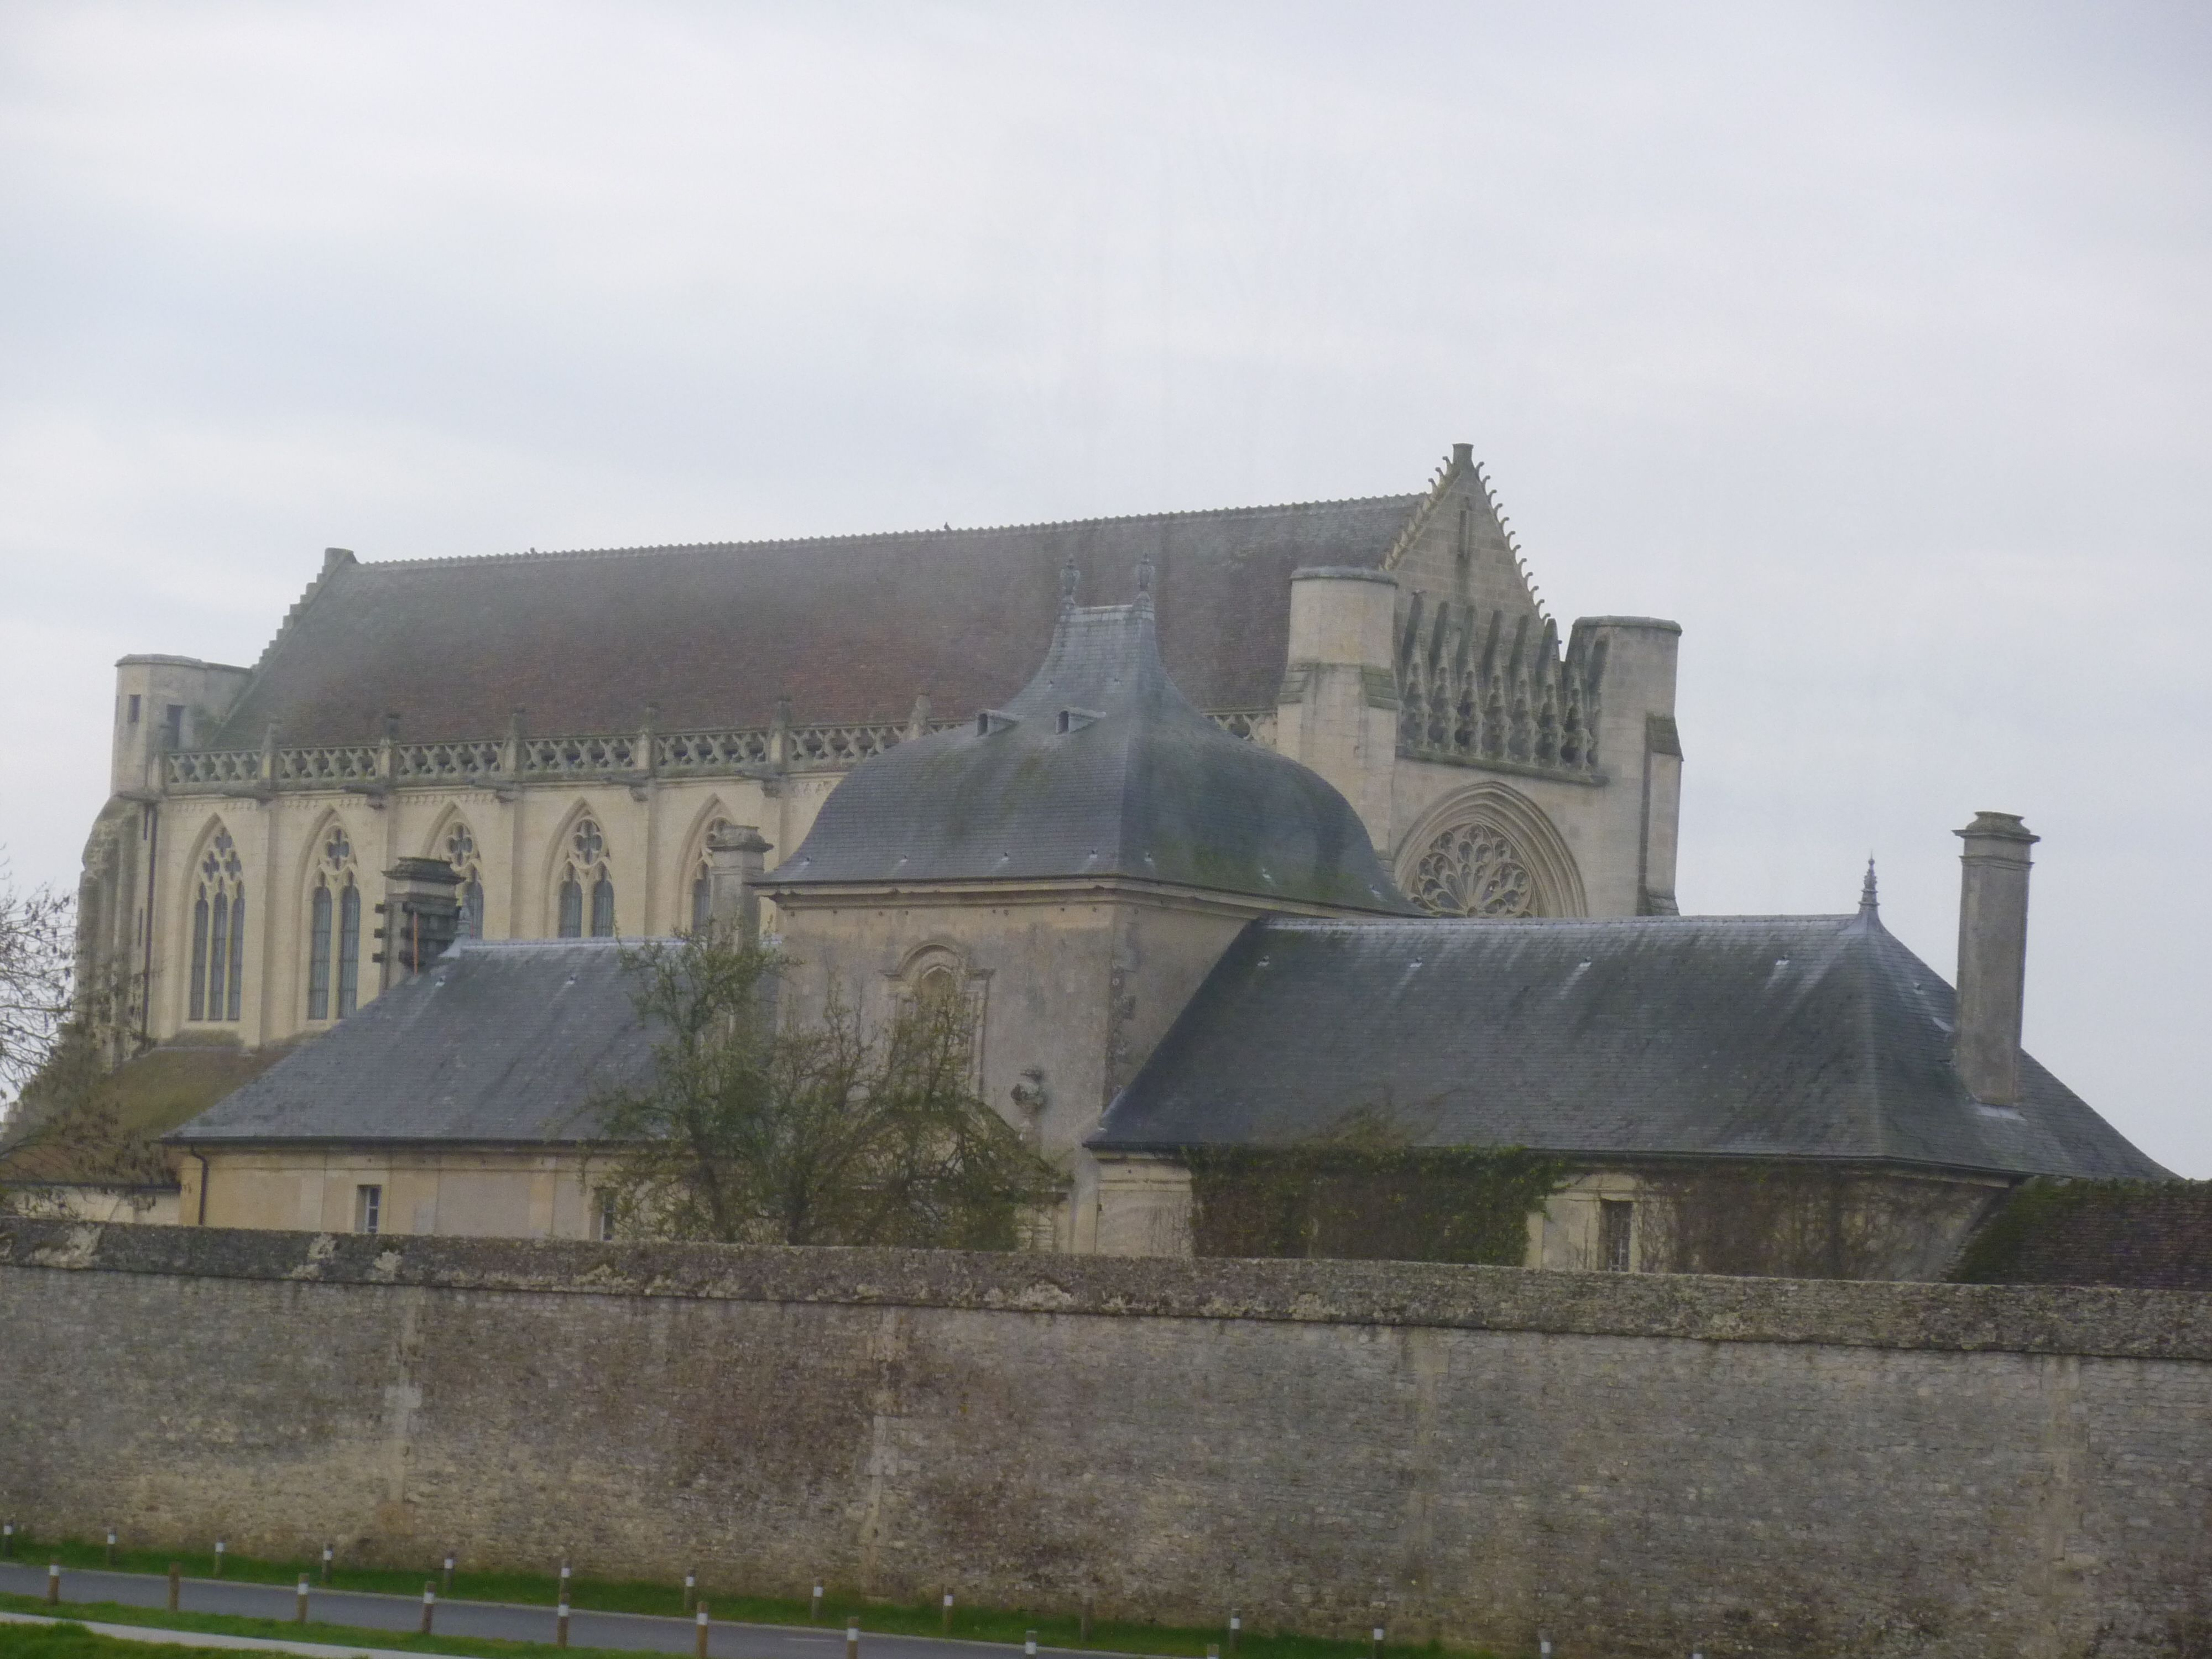 France Abbaye D Ardenne The Murder Of 20 Canadian Prisoners War By German SS Troops In Normandy Jun 1944 Took Place Here